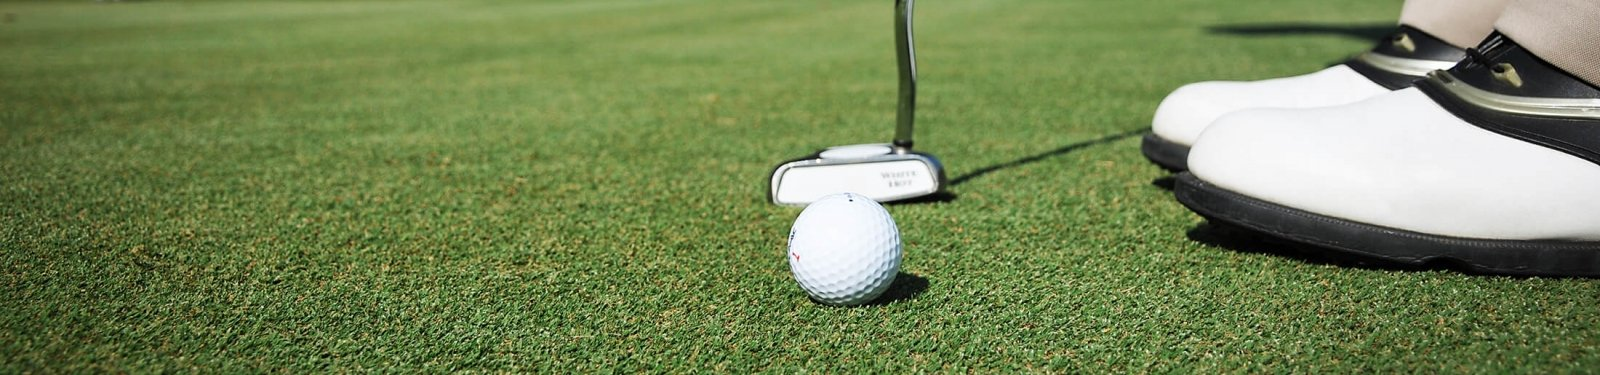 Close up view of a golfer putting